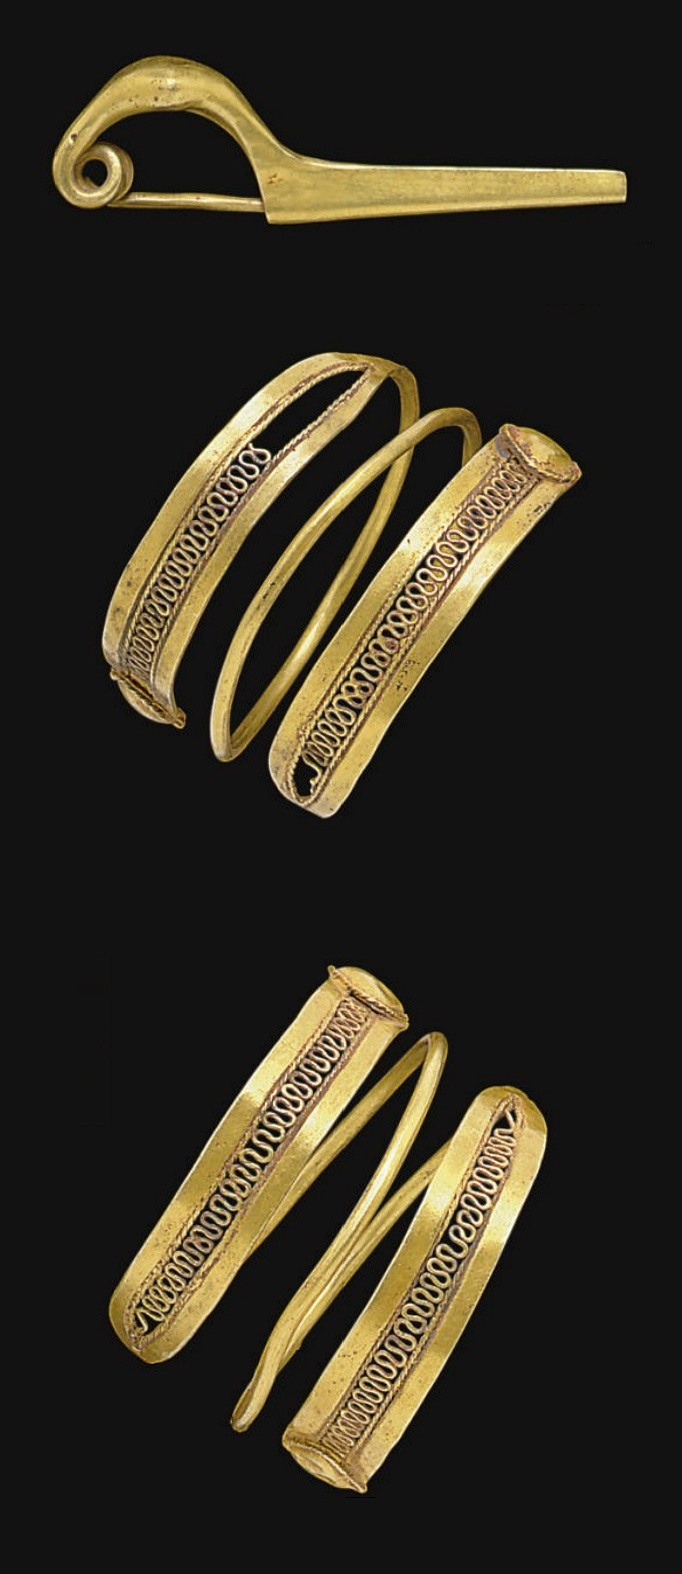 A PAIR OF ETRUSCAN GOLD HAIR COILS AND A FIBULA   CIRCA MID 7TH CENTURY B.C.   The hair coils each formed from a length of plain wire coiled into a spiral, each end split into two strips enclosing an undulating wire framed by twisted wire, terminating in triangular bosses framed by twisted wire; the fibula of sanguisuga form, with a hollow arched bow and long narrow catchplate, the pin coiled where it emerges from the bow  Fibula: 1 5/8 in. (4.1 cm.) long